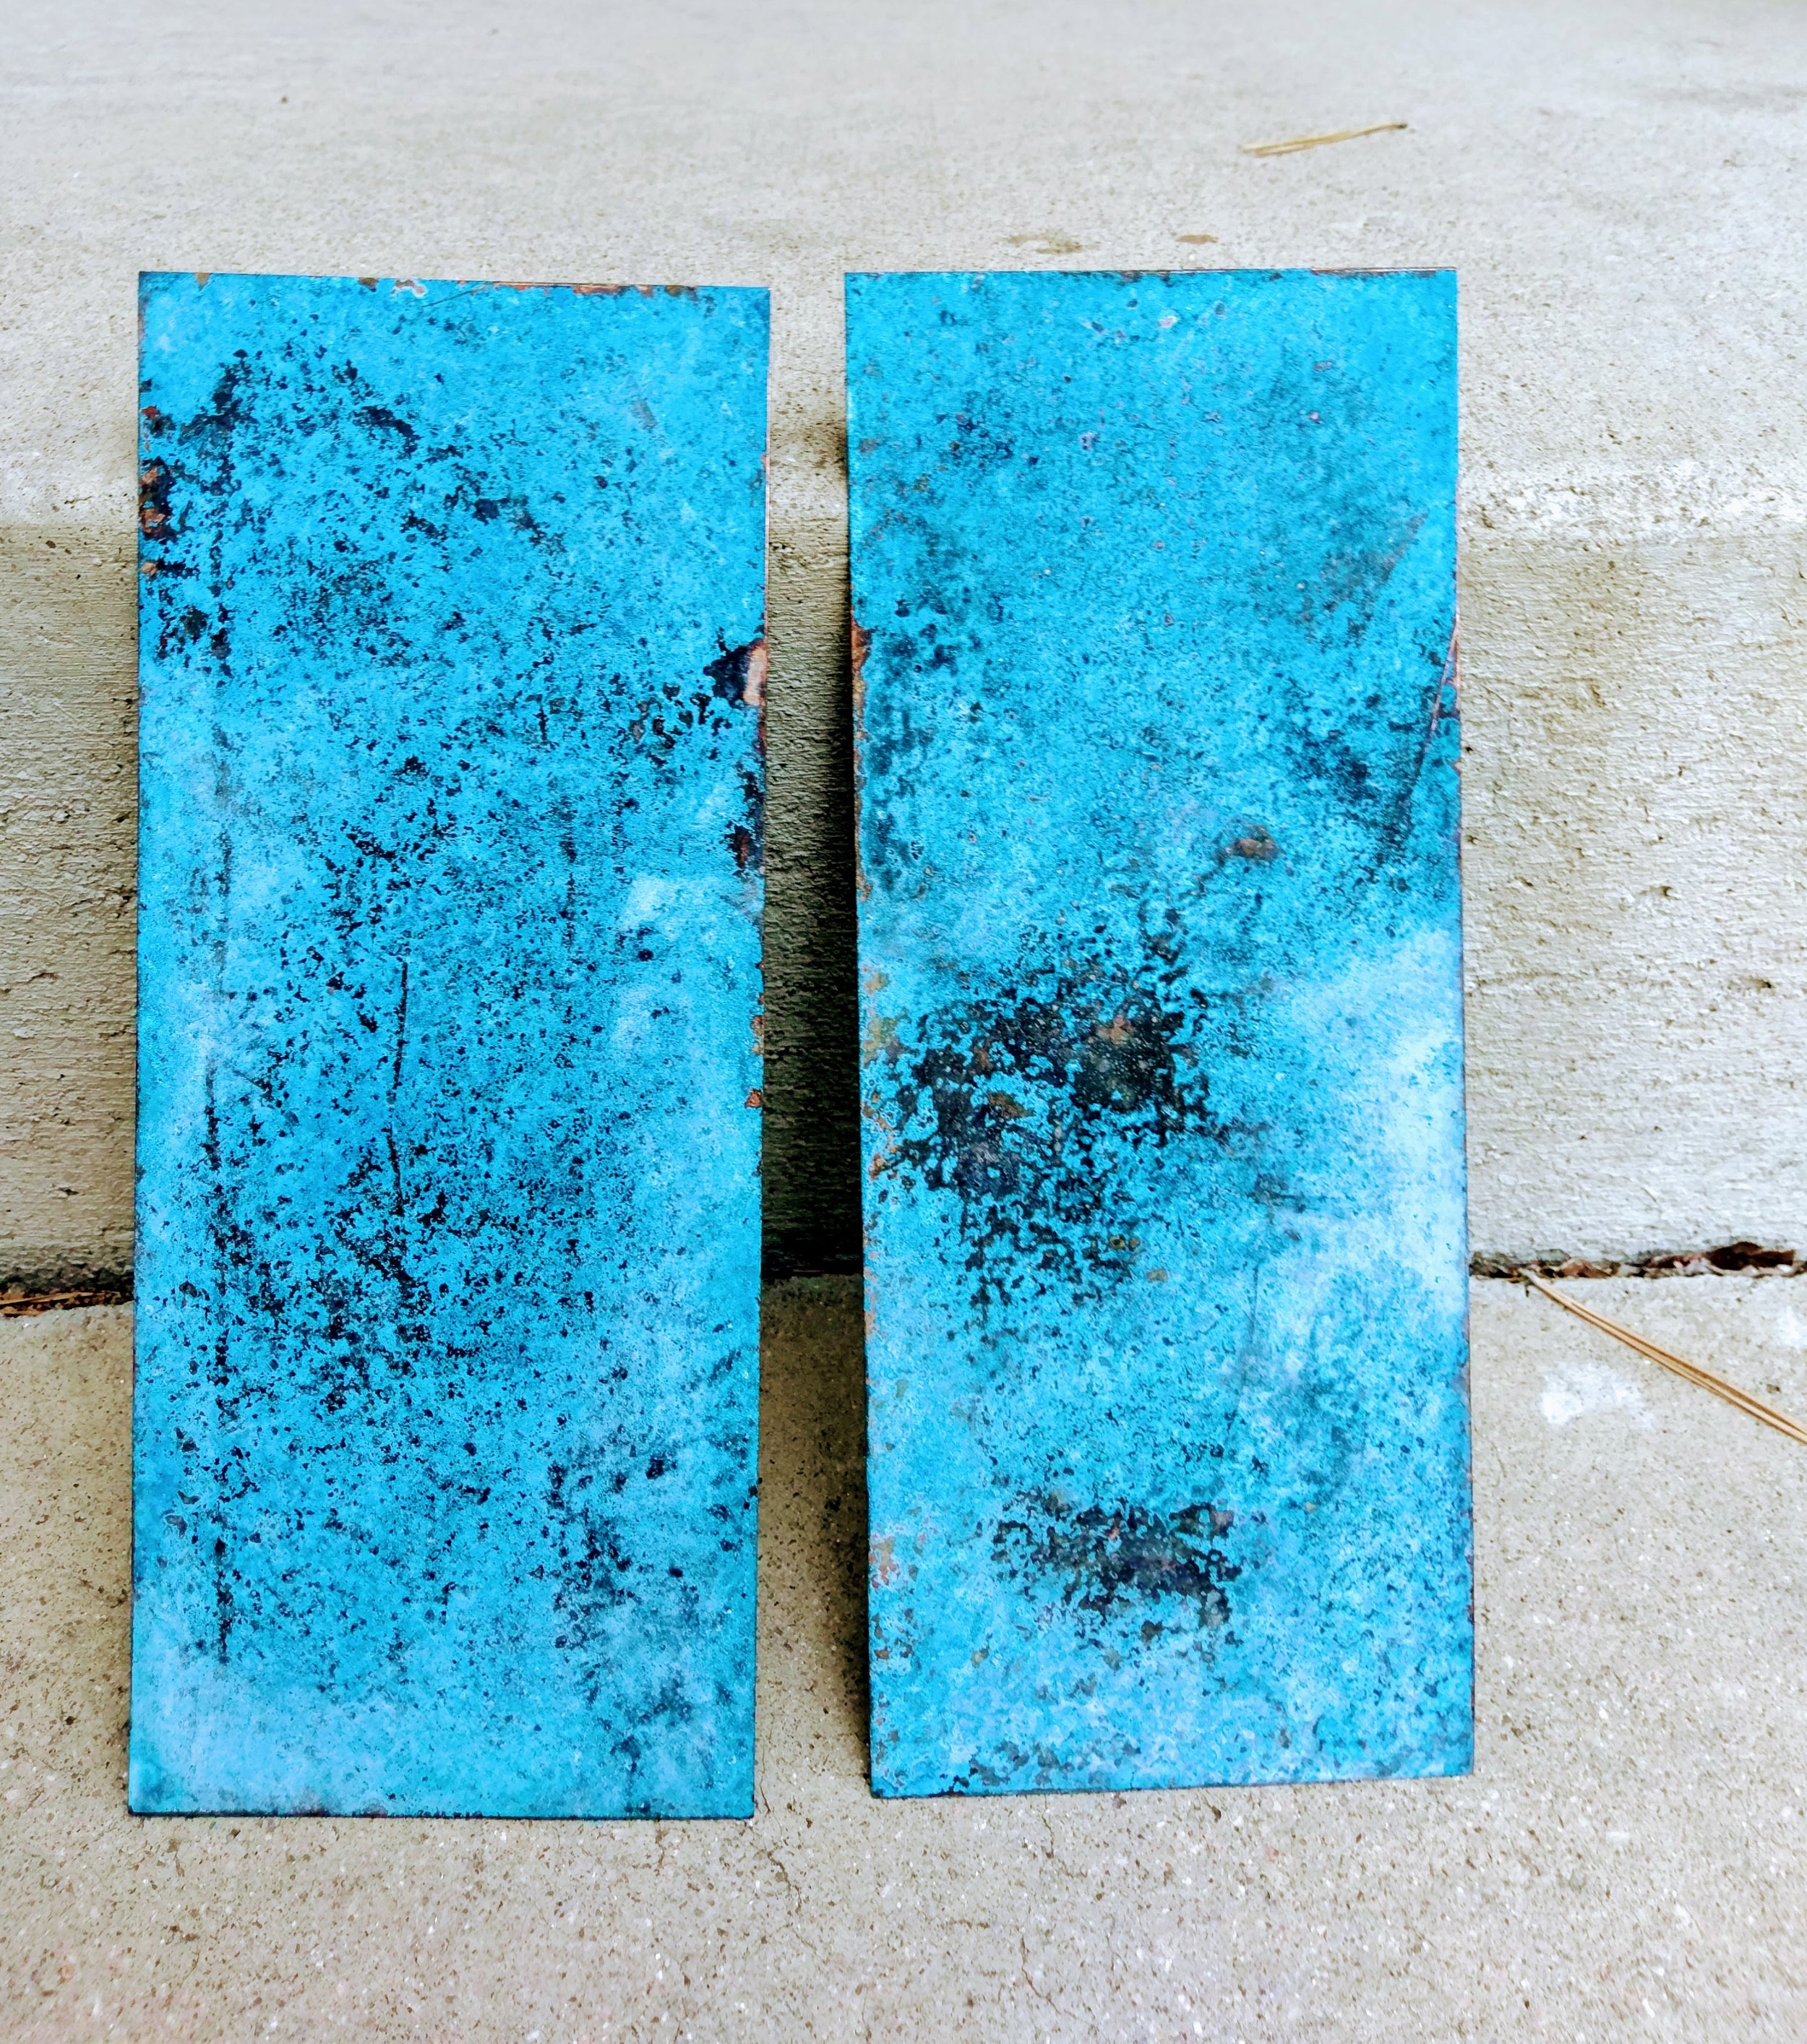 Finished copper patinas. These pieces can be further sanded to expose more of the copper beneath, or left as is, beautifully blue!